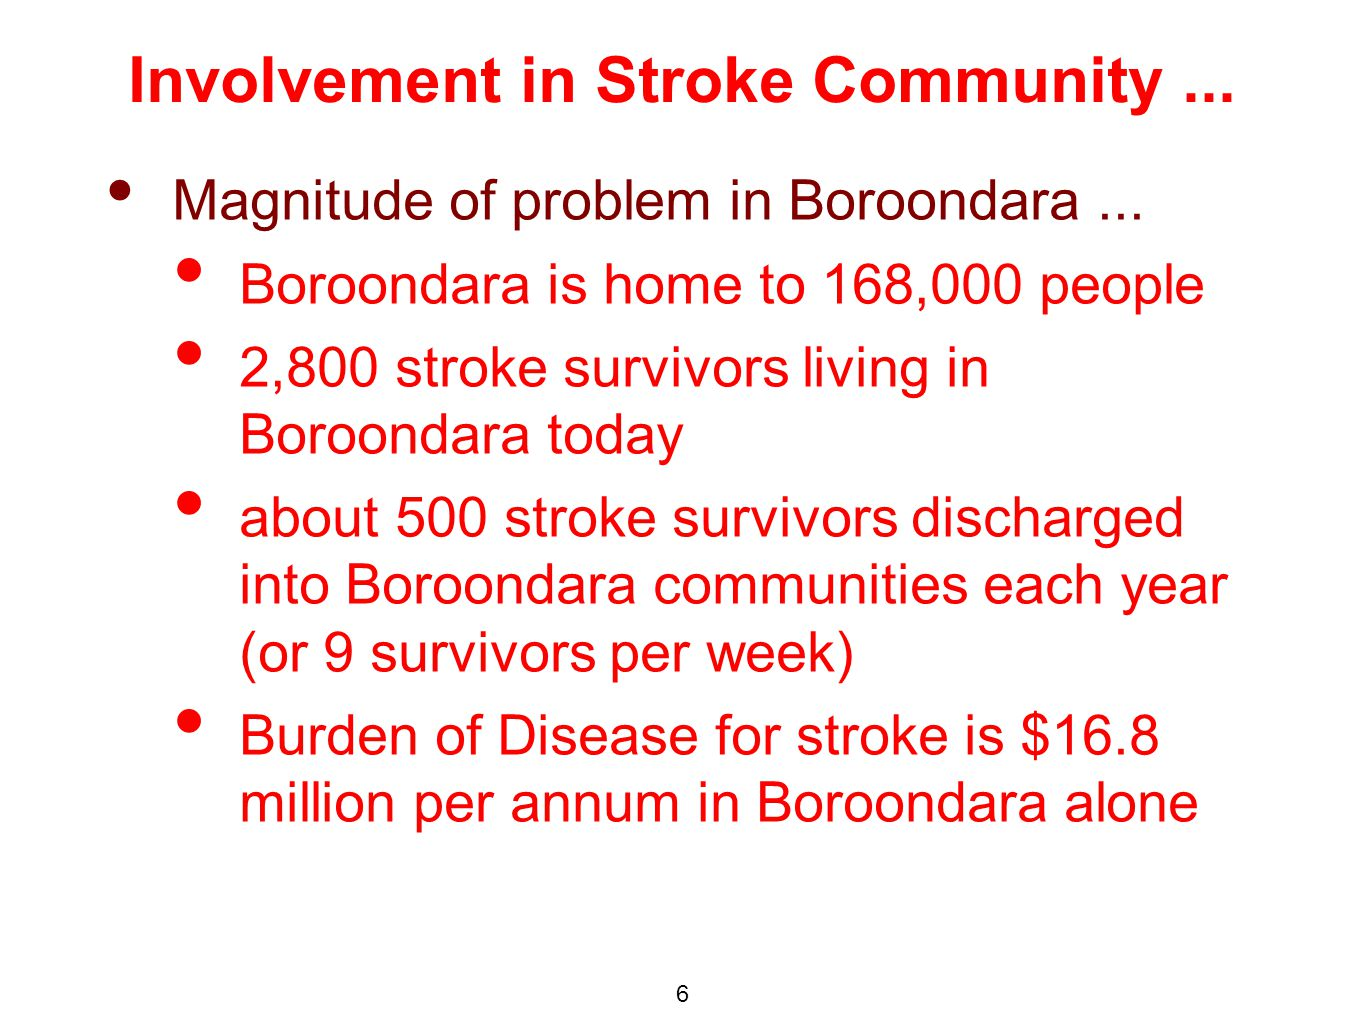 Magnitude of problem in Boroondara...